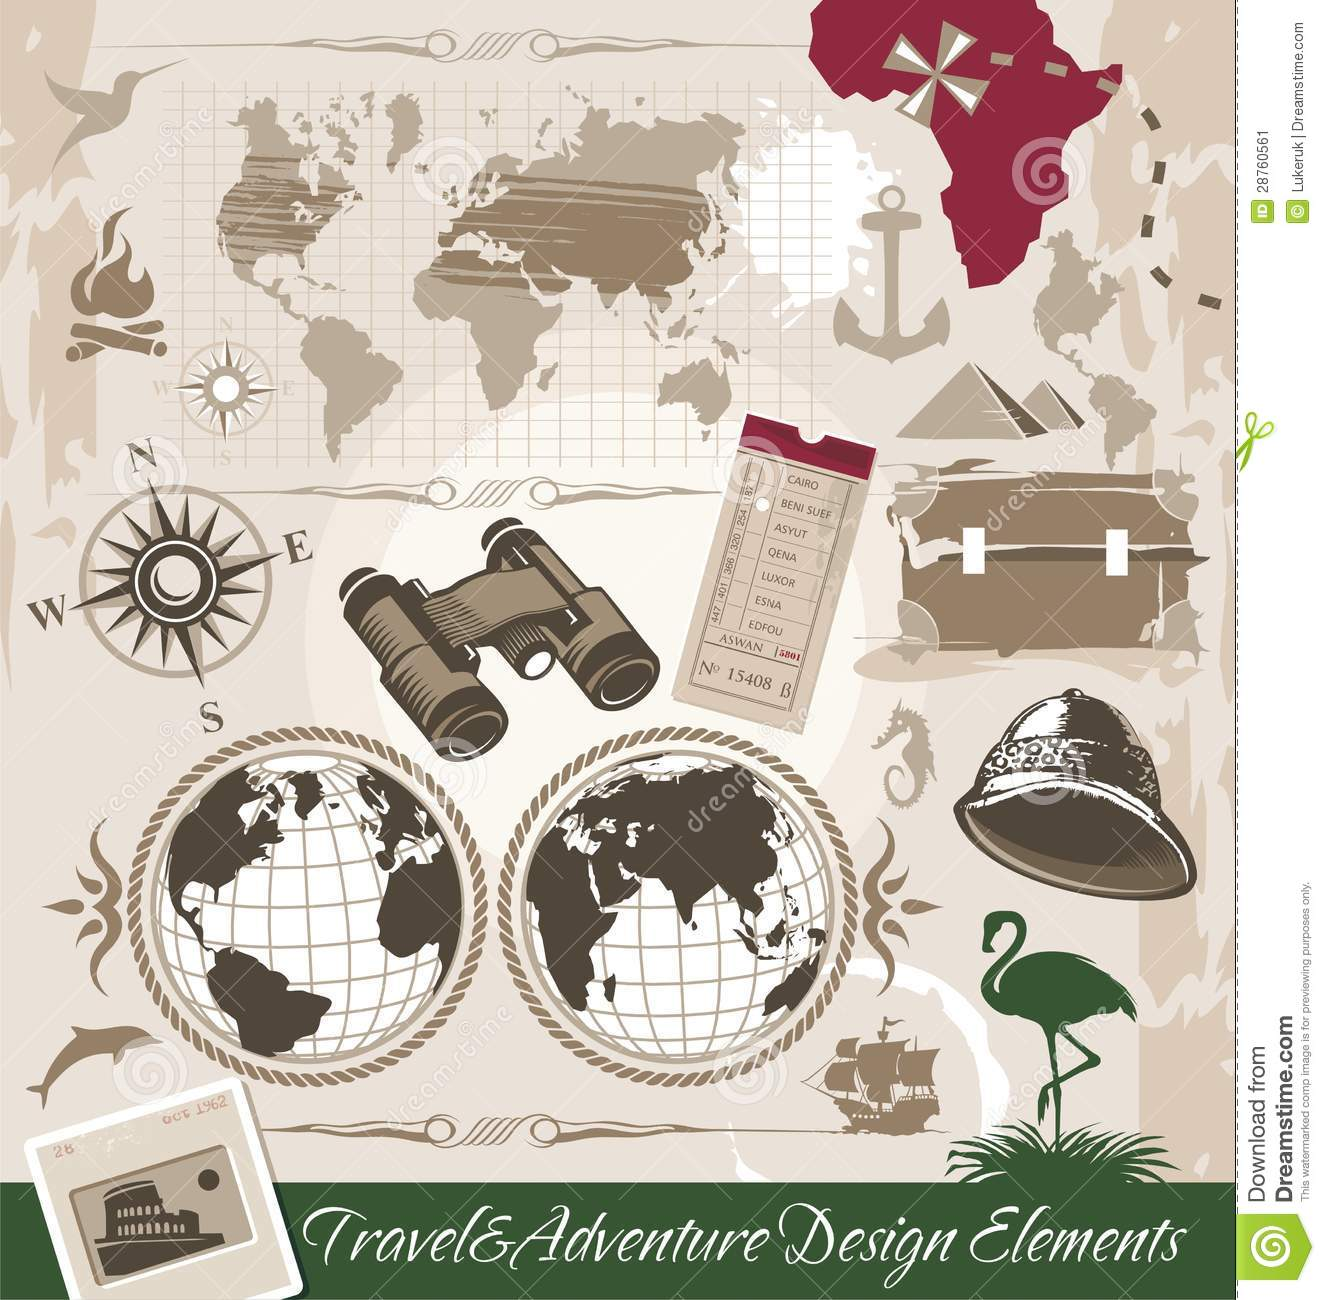 Travel and Adventure Design Elements